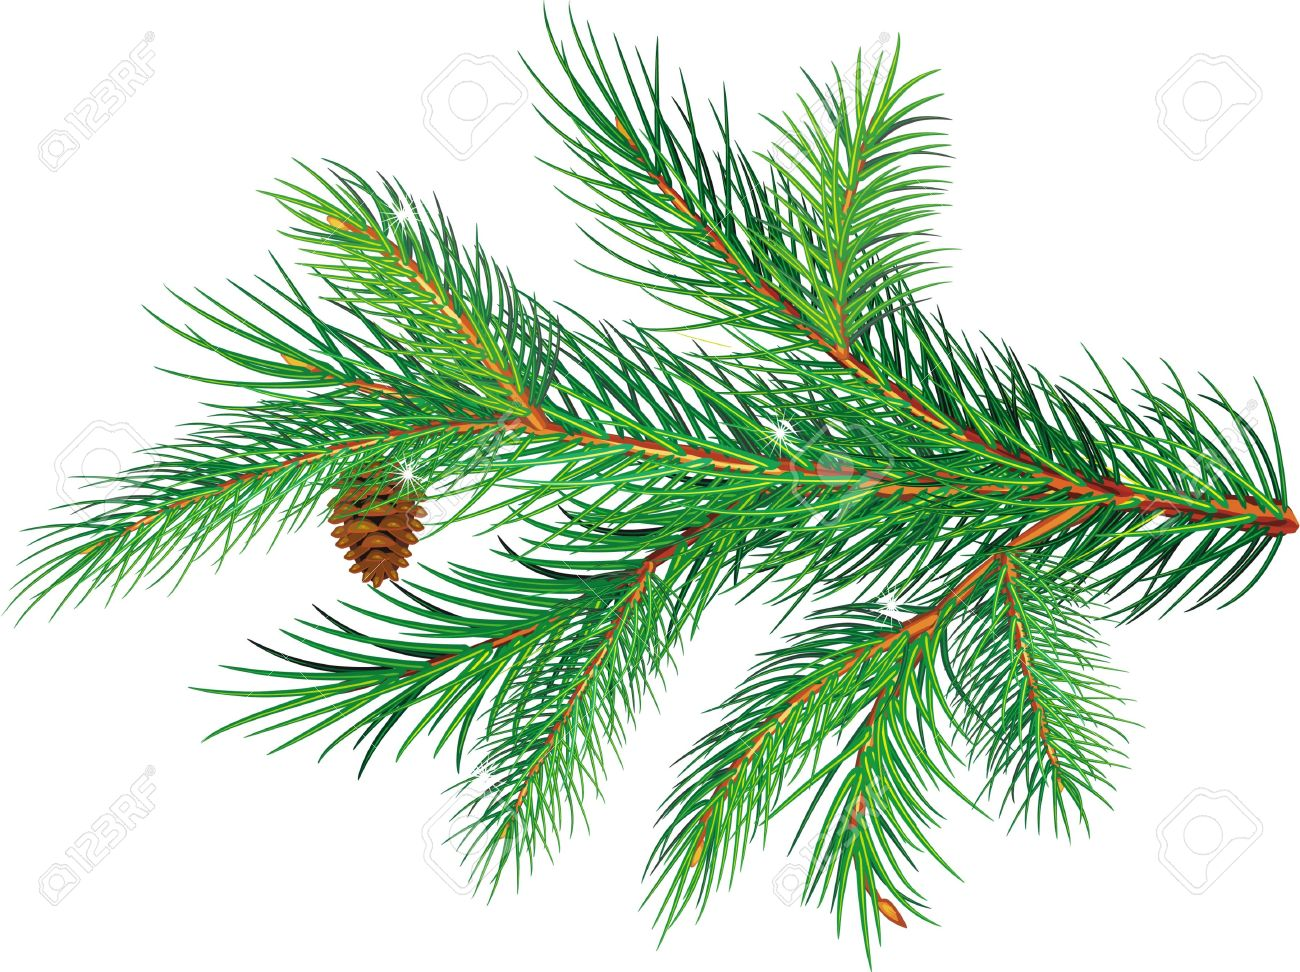 Fir Tree Branches Clip Art.